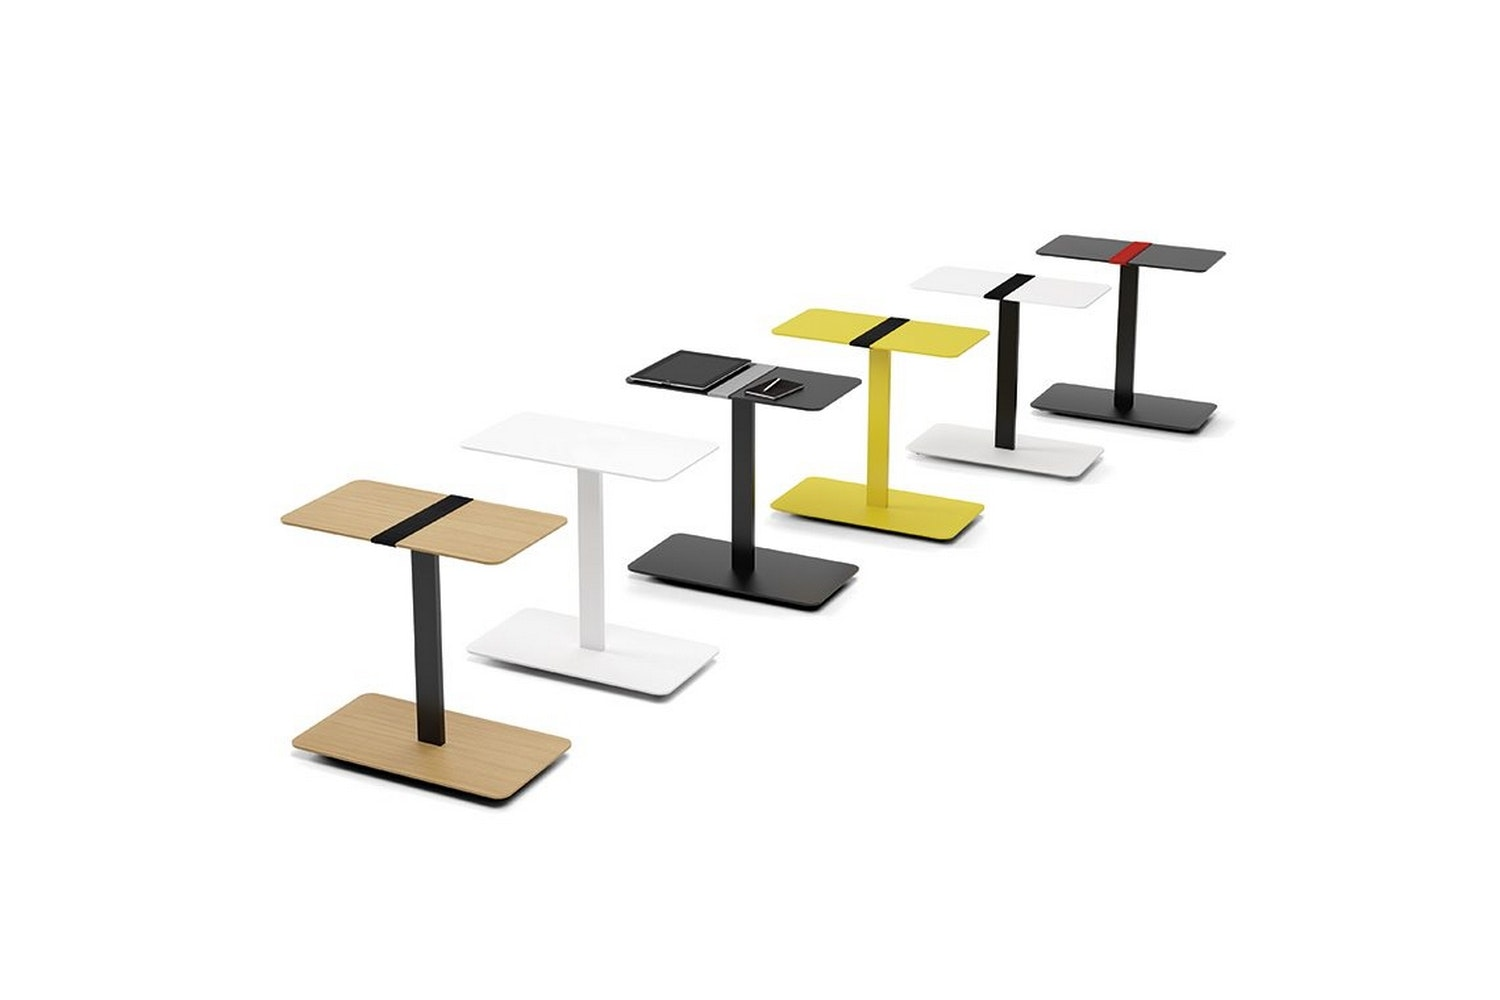 Serra Table by Victor Carrasco for Viccarbe